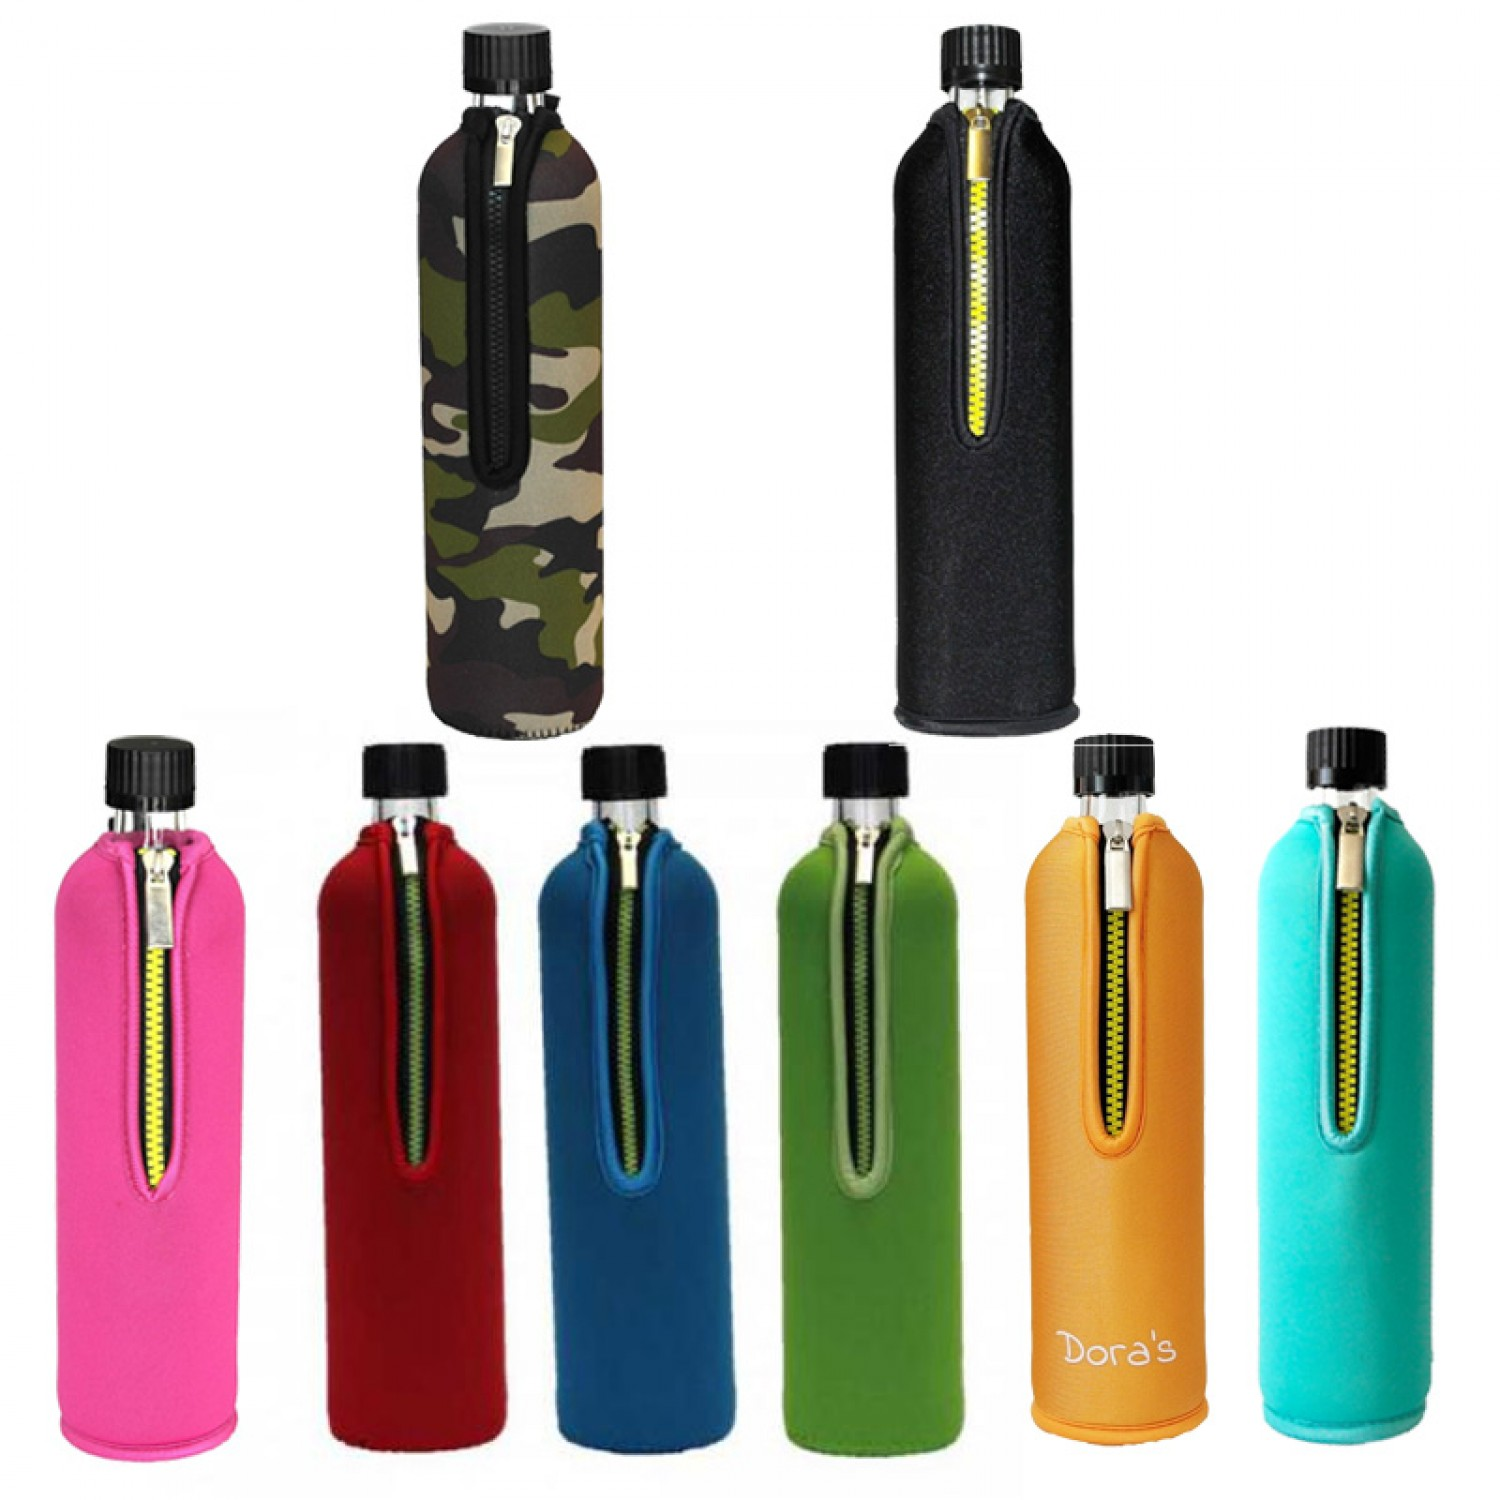 Doras drinking bottle with neoprene sleeve